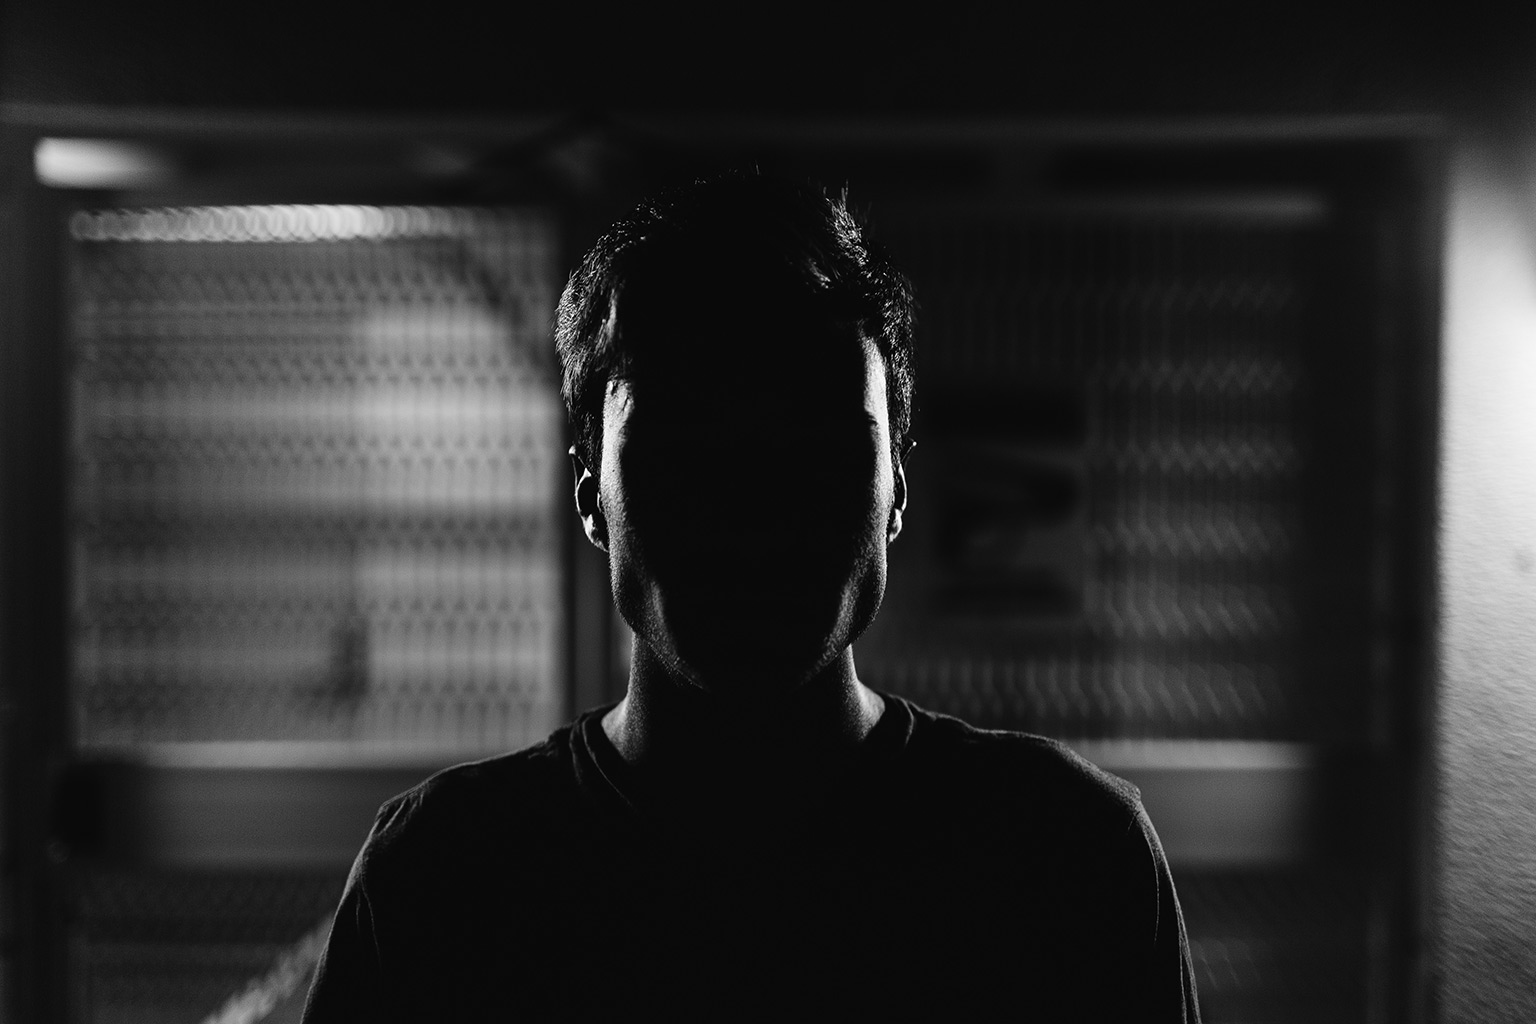 man in darkness with face hidden